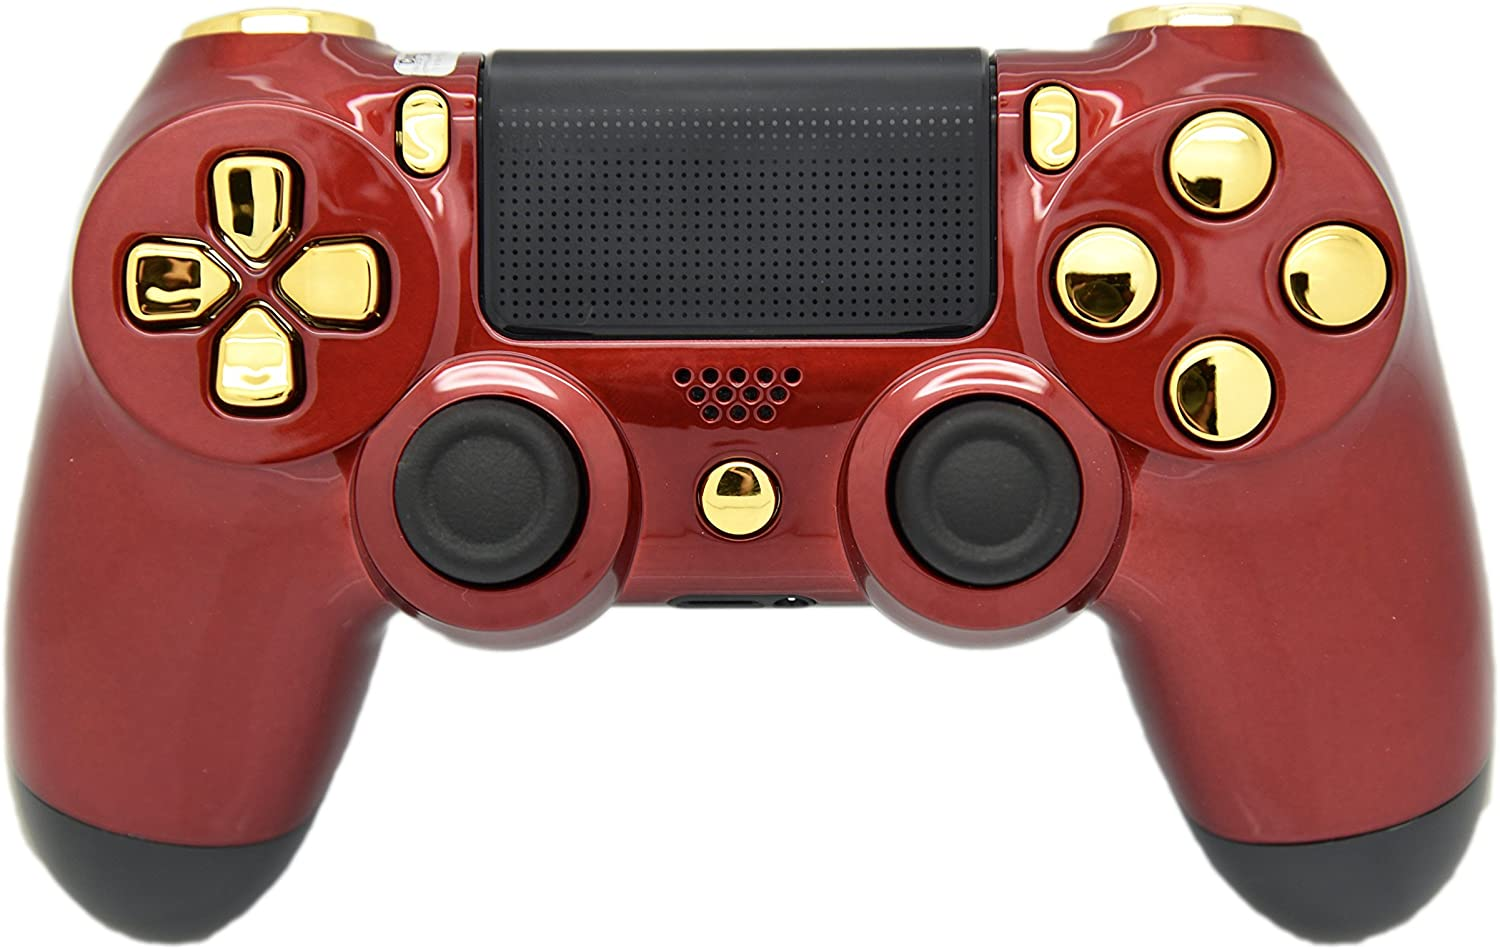 Red & GOLD PS4 Rapid Fire Modded Controller, Works With All Games, COD, Rapid Fire, Dropshot, Akimbo & More